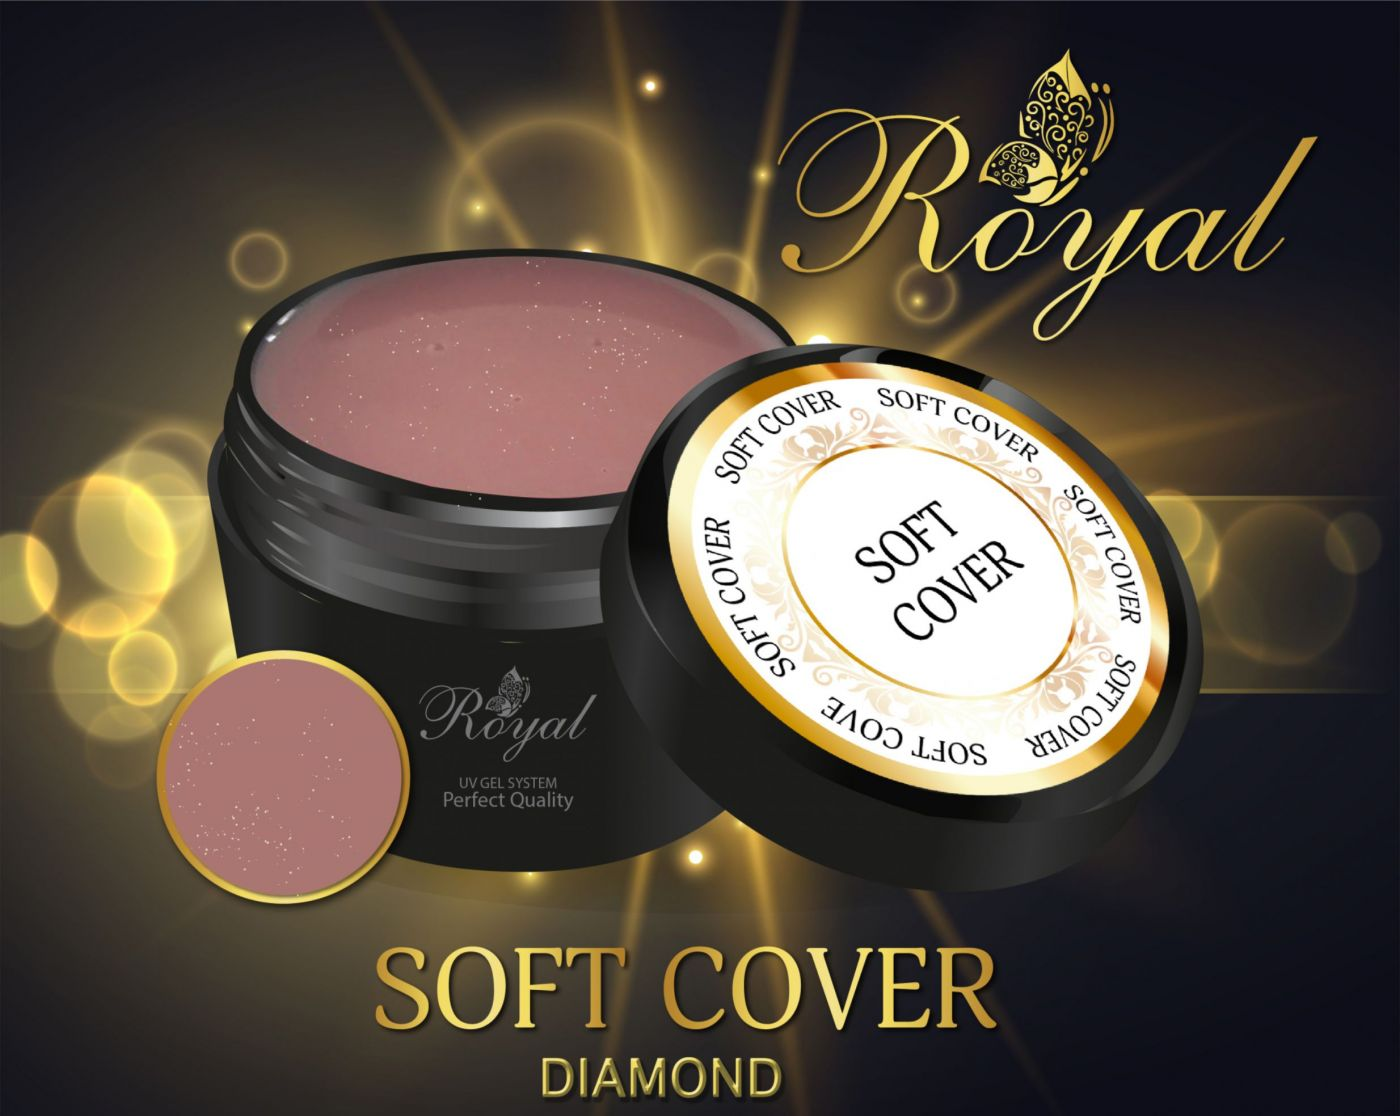 SOFT COVER DIAMOND ROYAL GEL